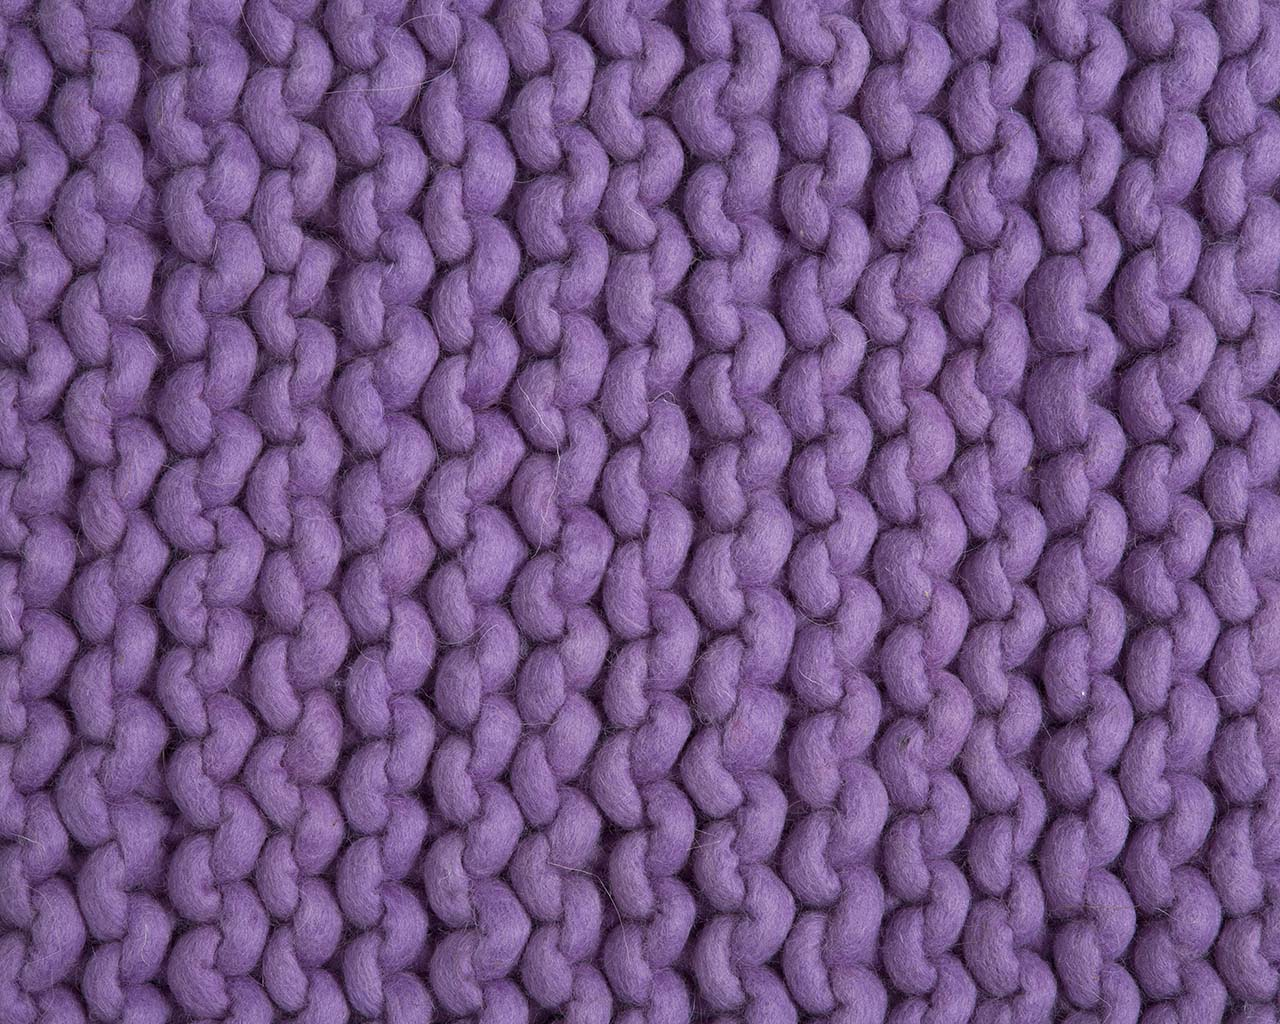 dark orchid braided asian rugs for sale